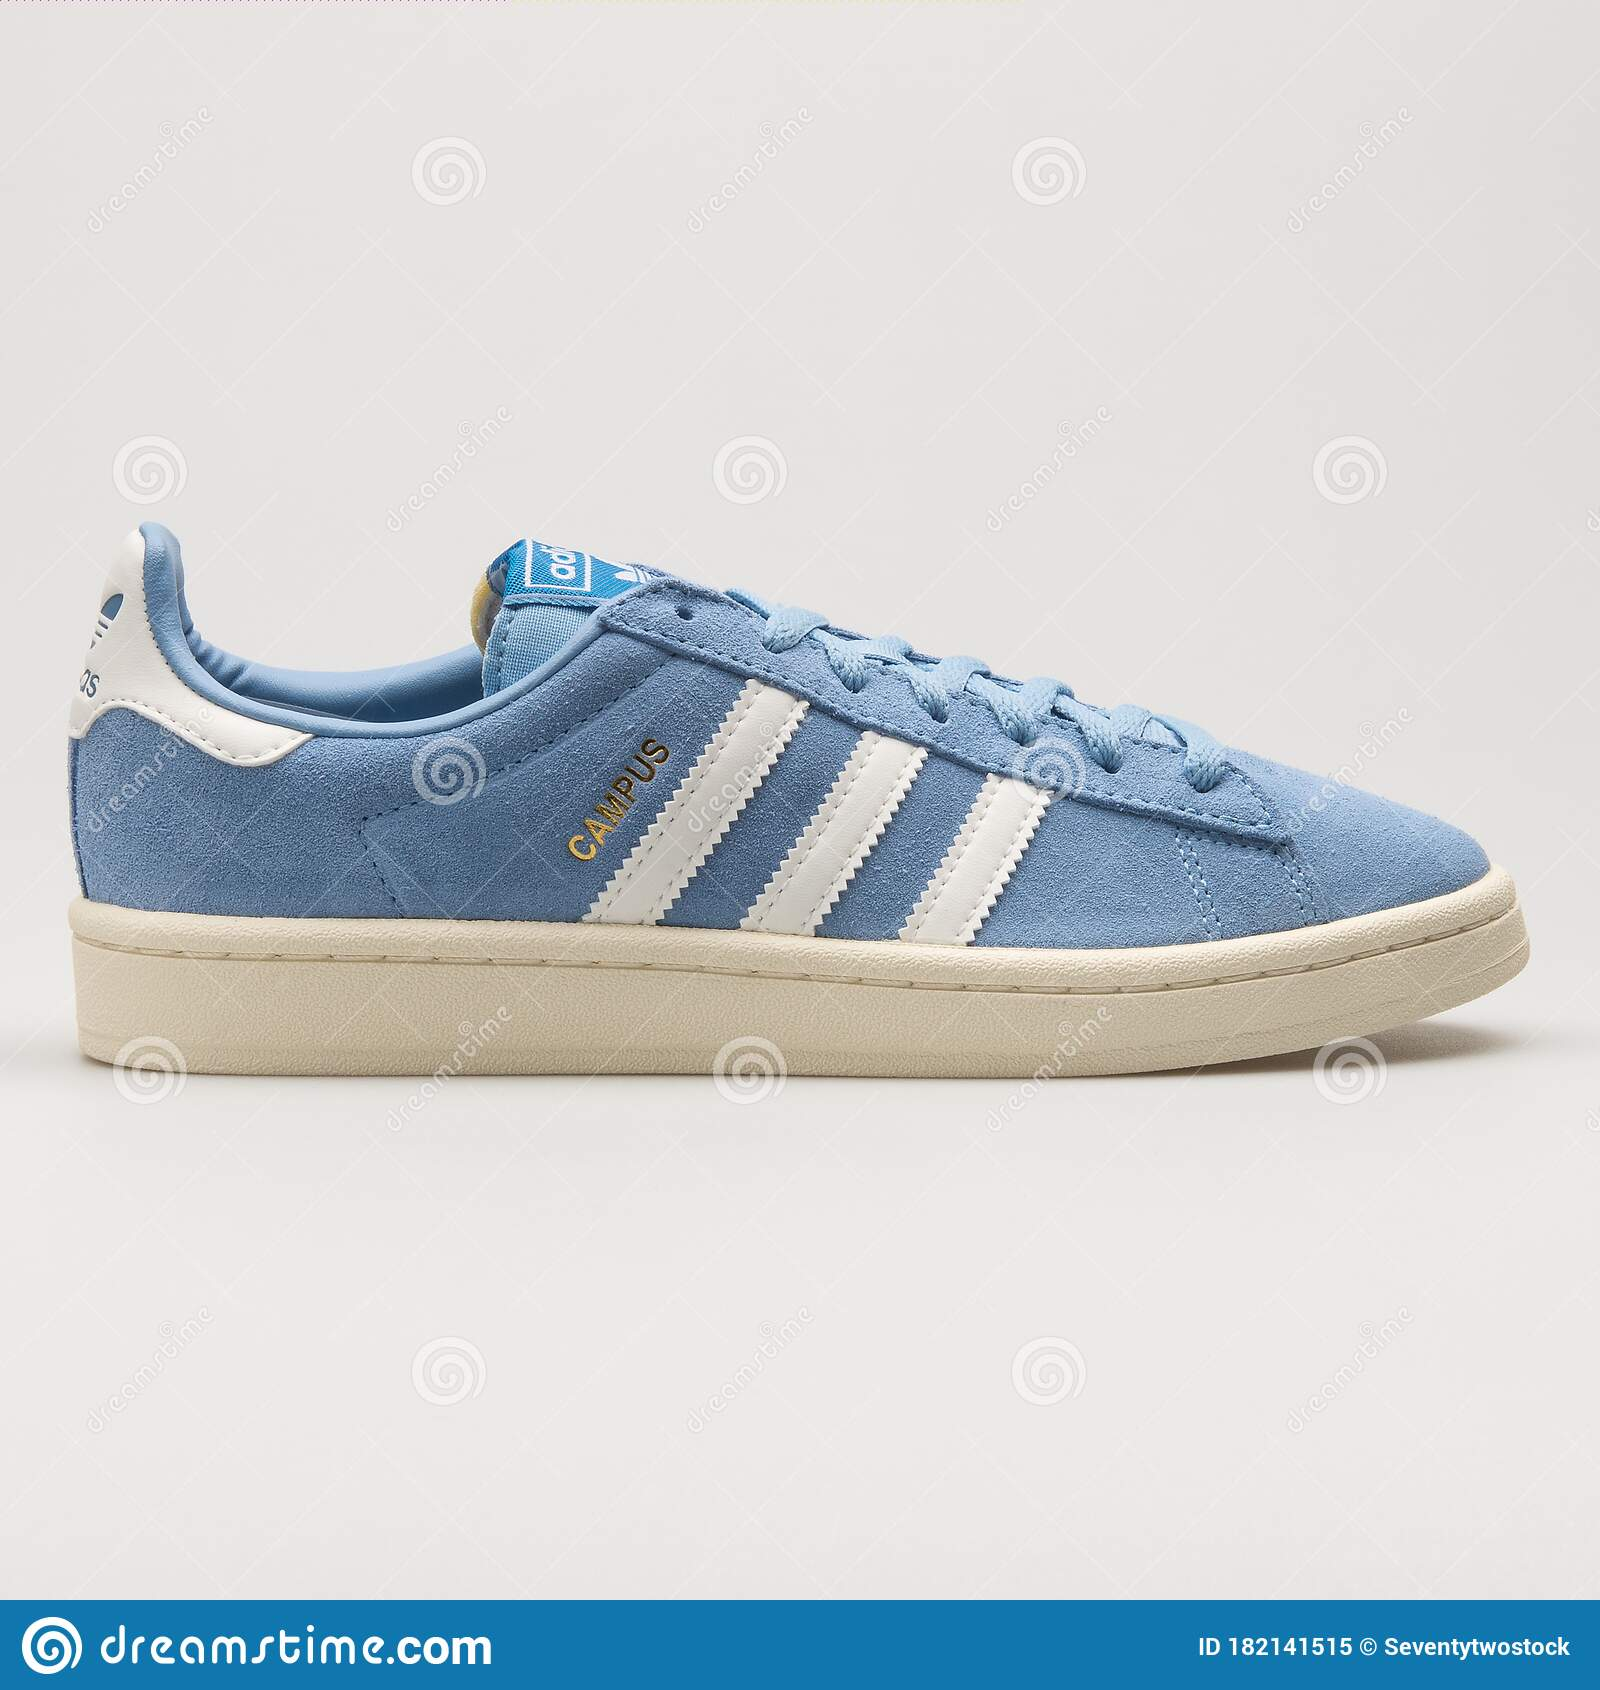 película Vaca Mayor  Adidas Campus Blue And White Sneaker Editorial Image - Image of running,  blue: 182141515